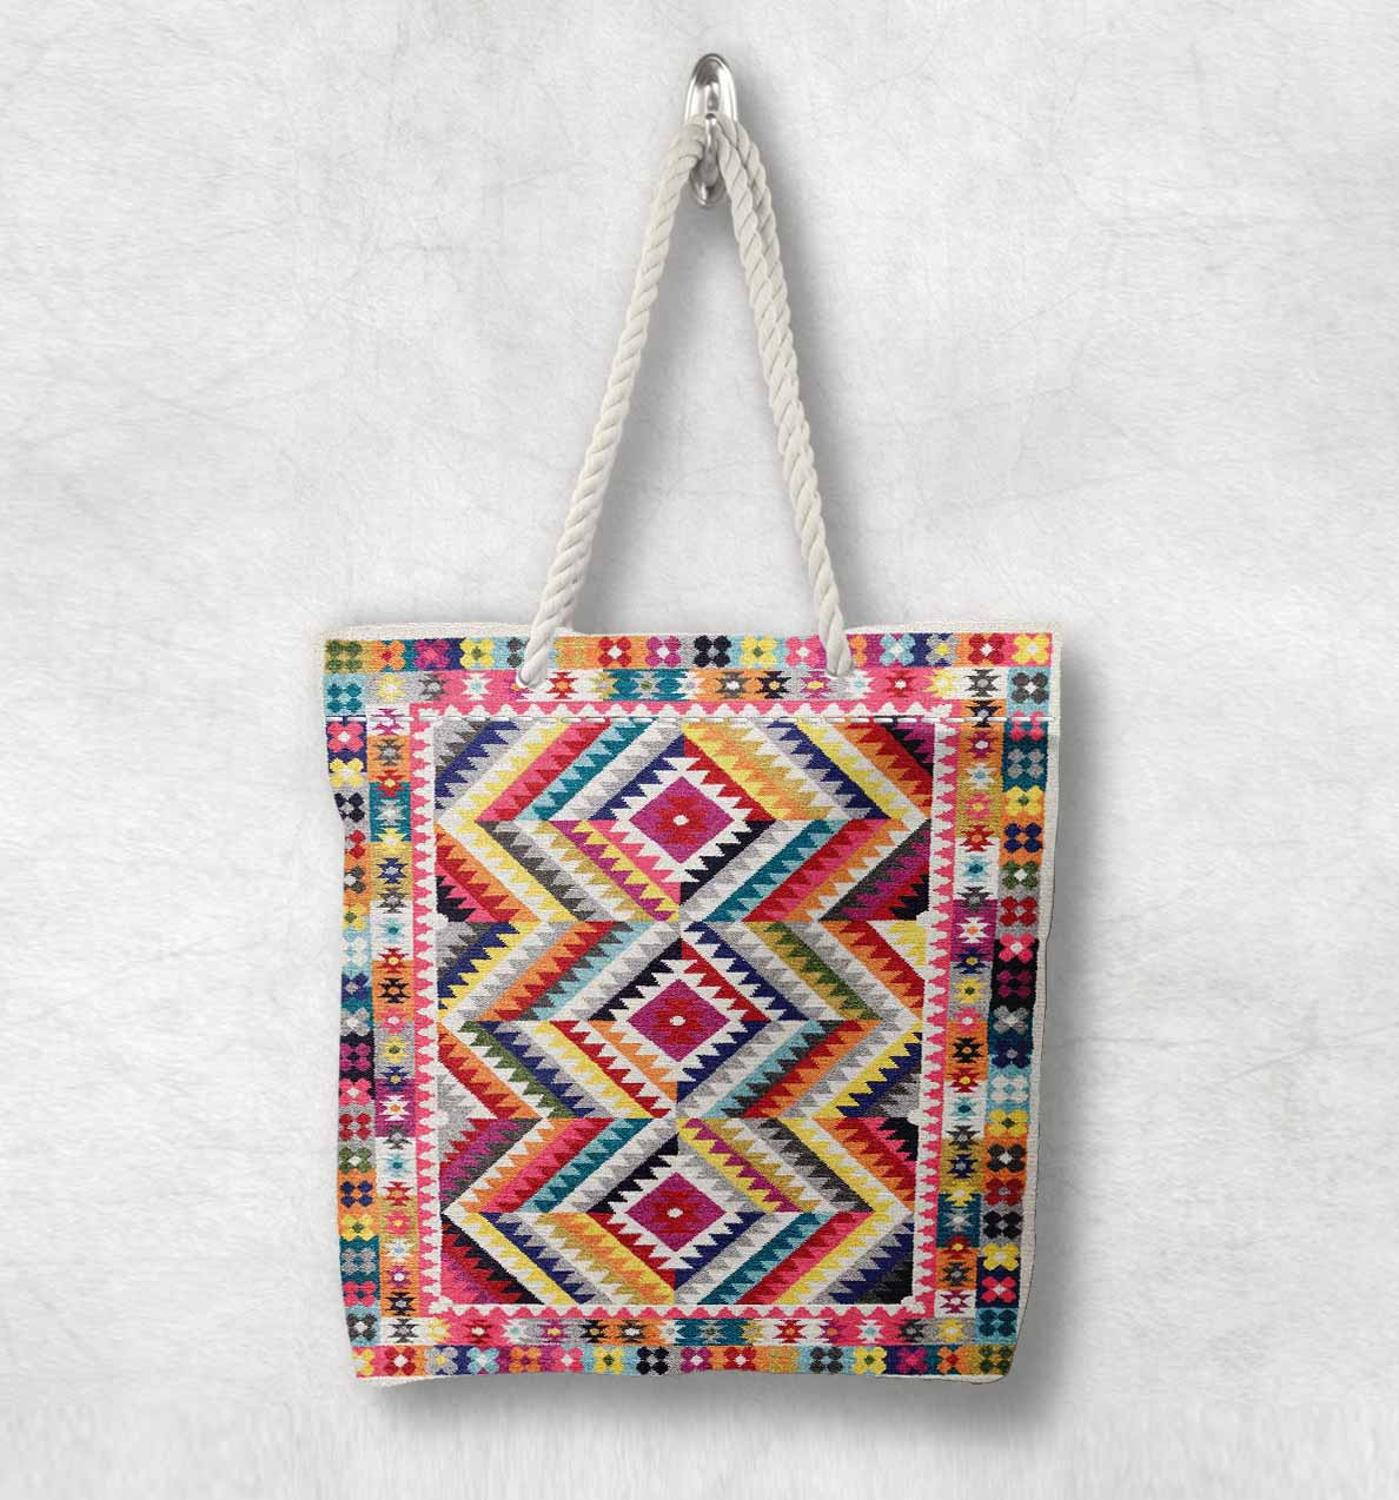 Else Colored Lines Turkish Kilim Design New Fashion White Rope Handle Canvas Bag Cotton Canvas Zippered Tote Bag Shoulder Bag